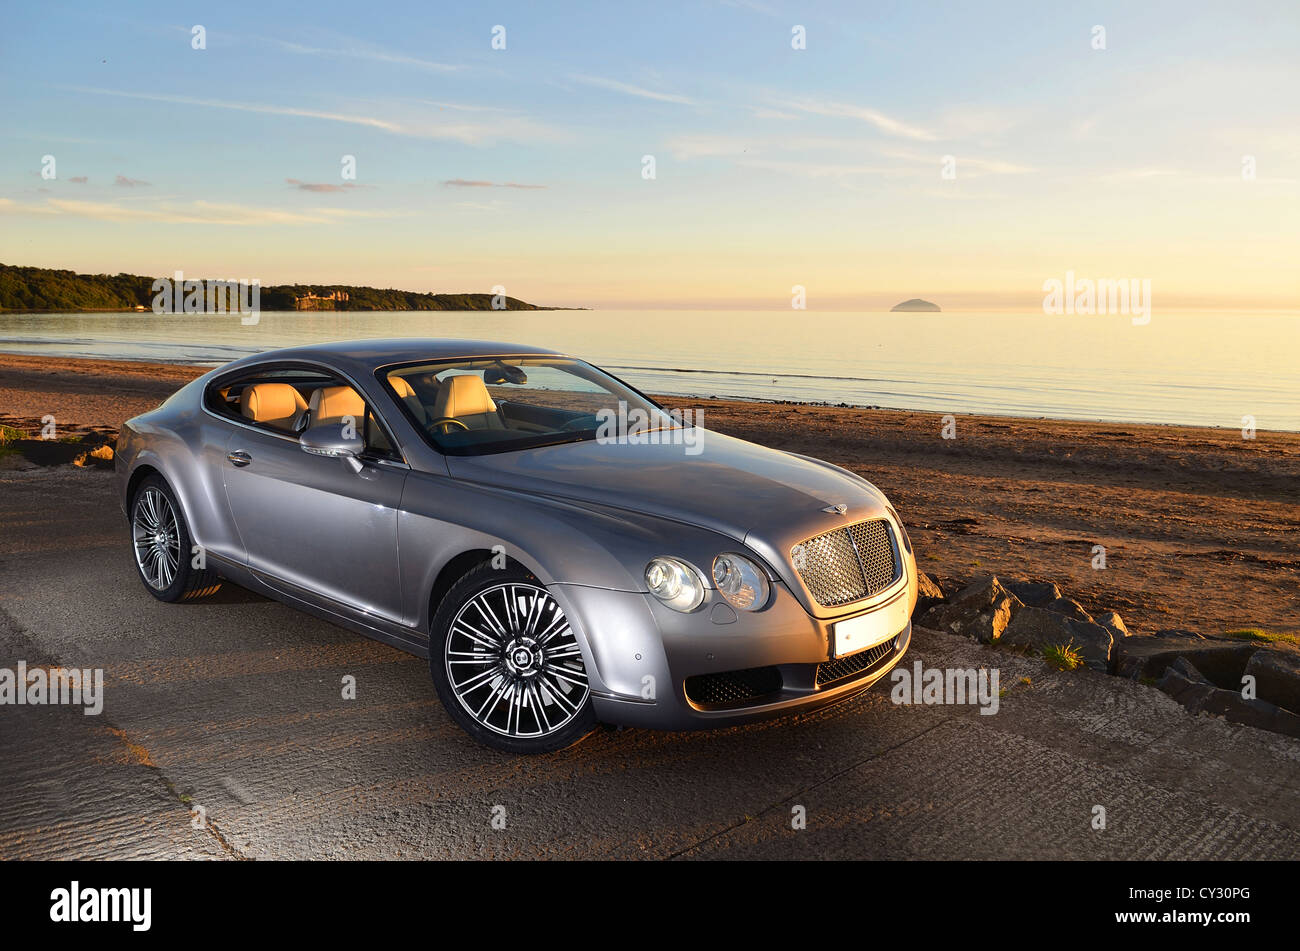 Bentley Continental GT Silver Super Car, Sunset Next To